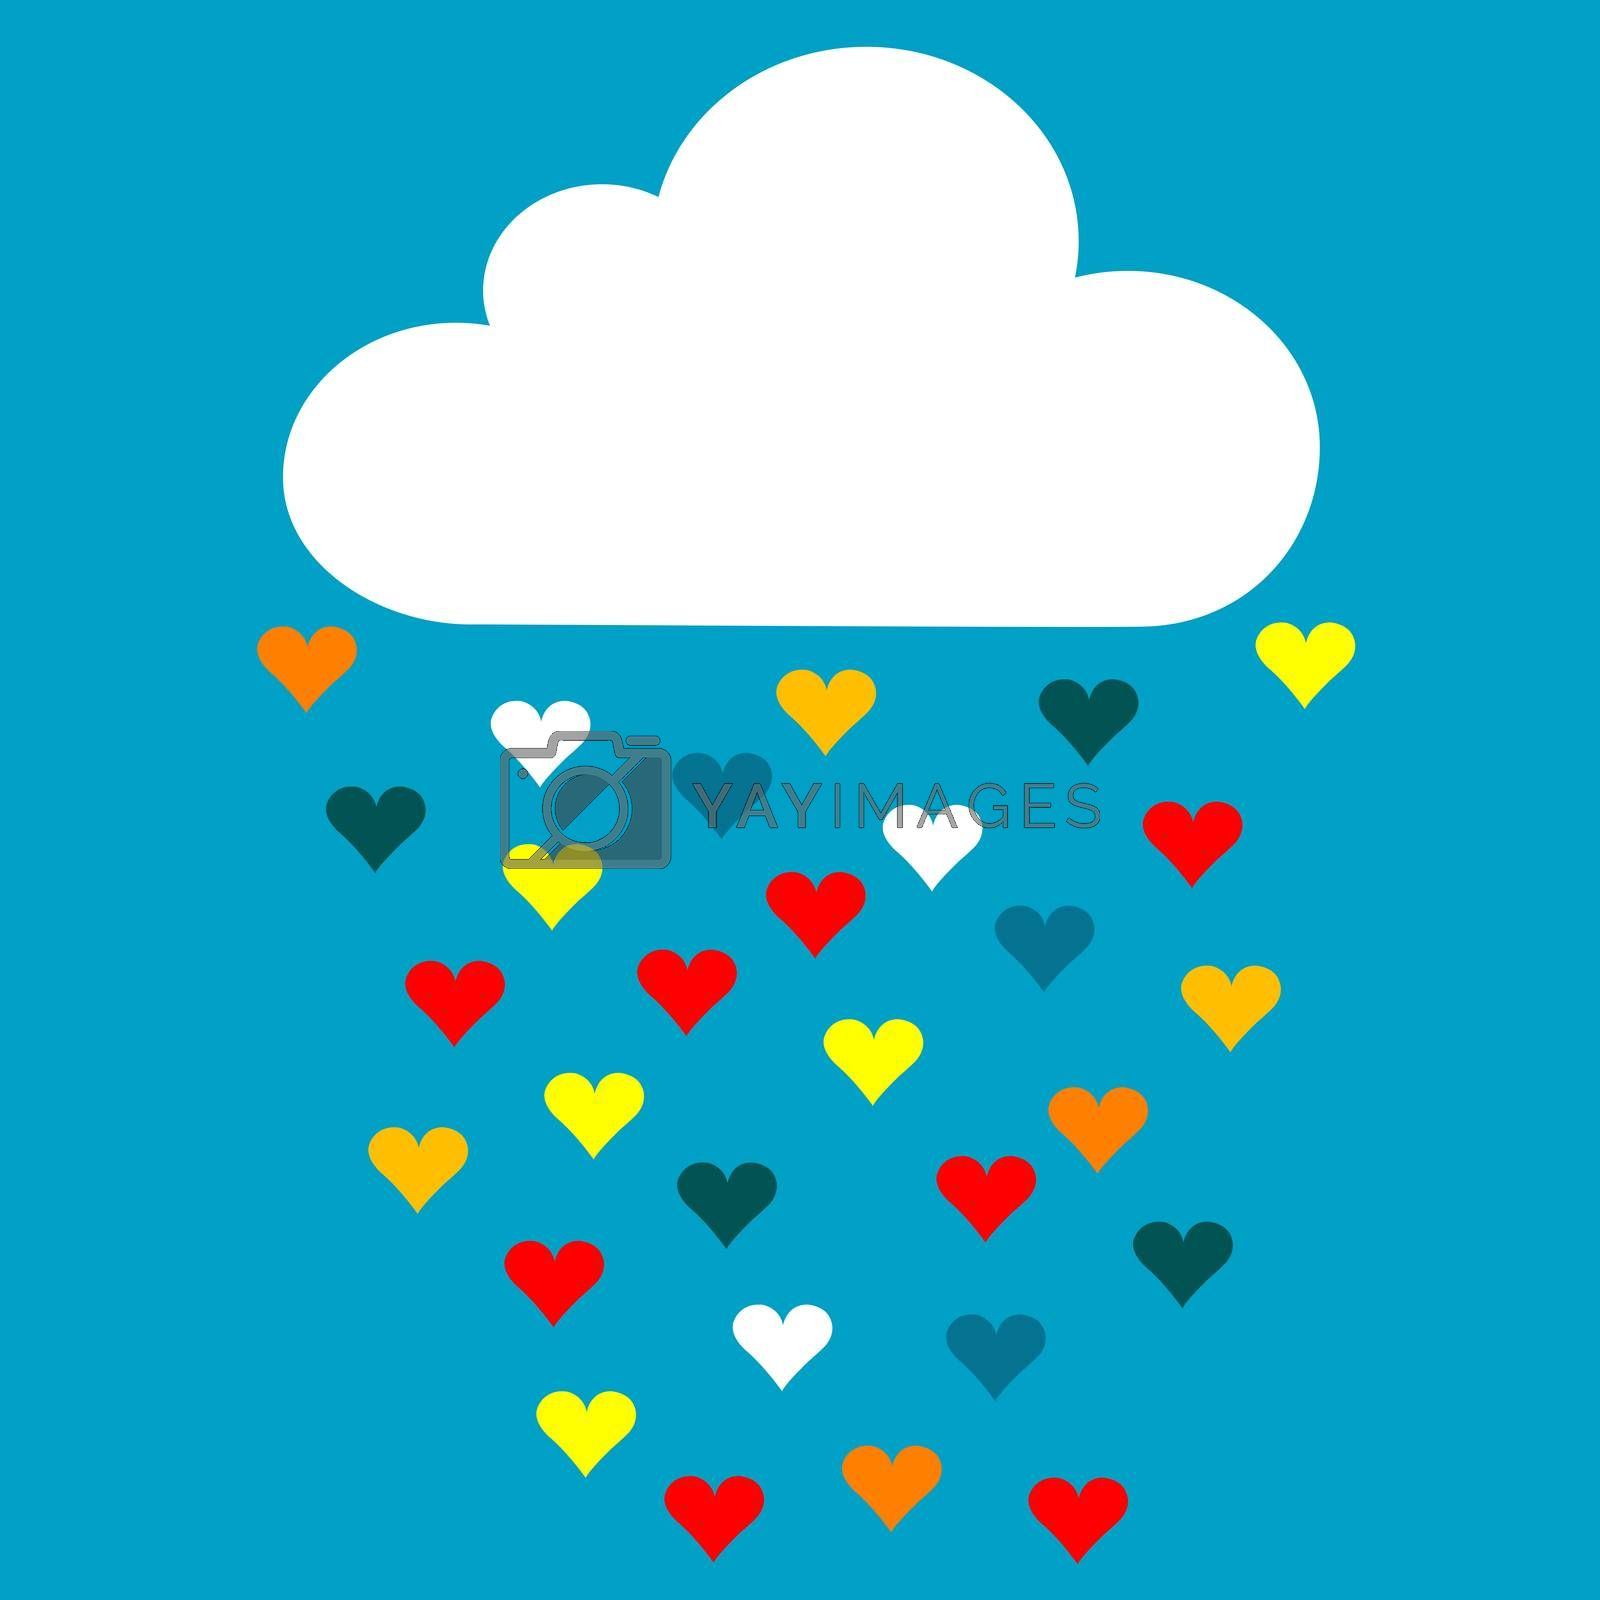 Cartoon cloud with rain drops of colored hearts in the blue sky